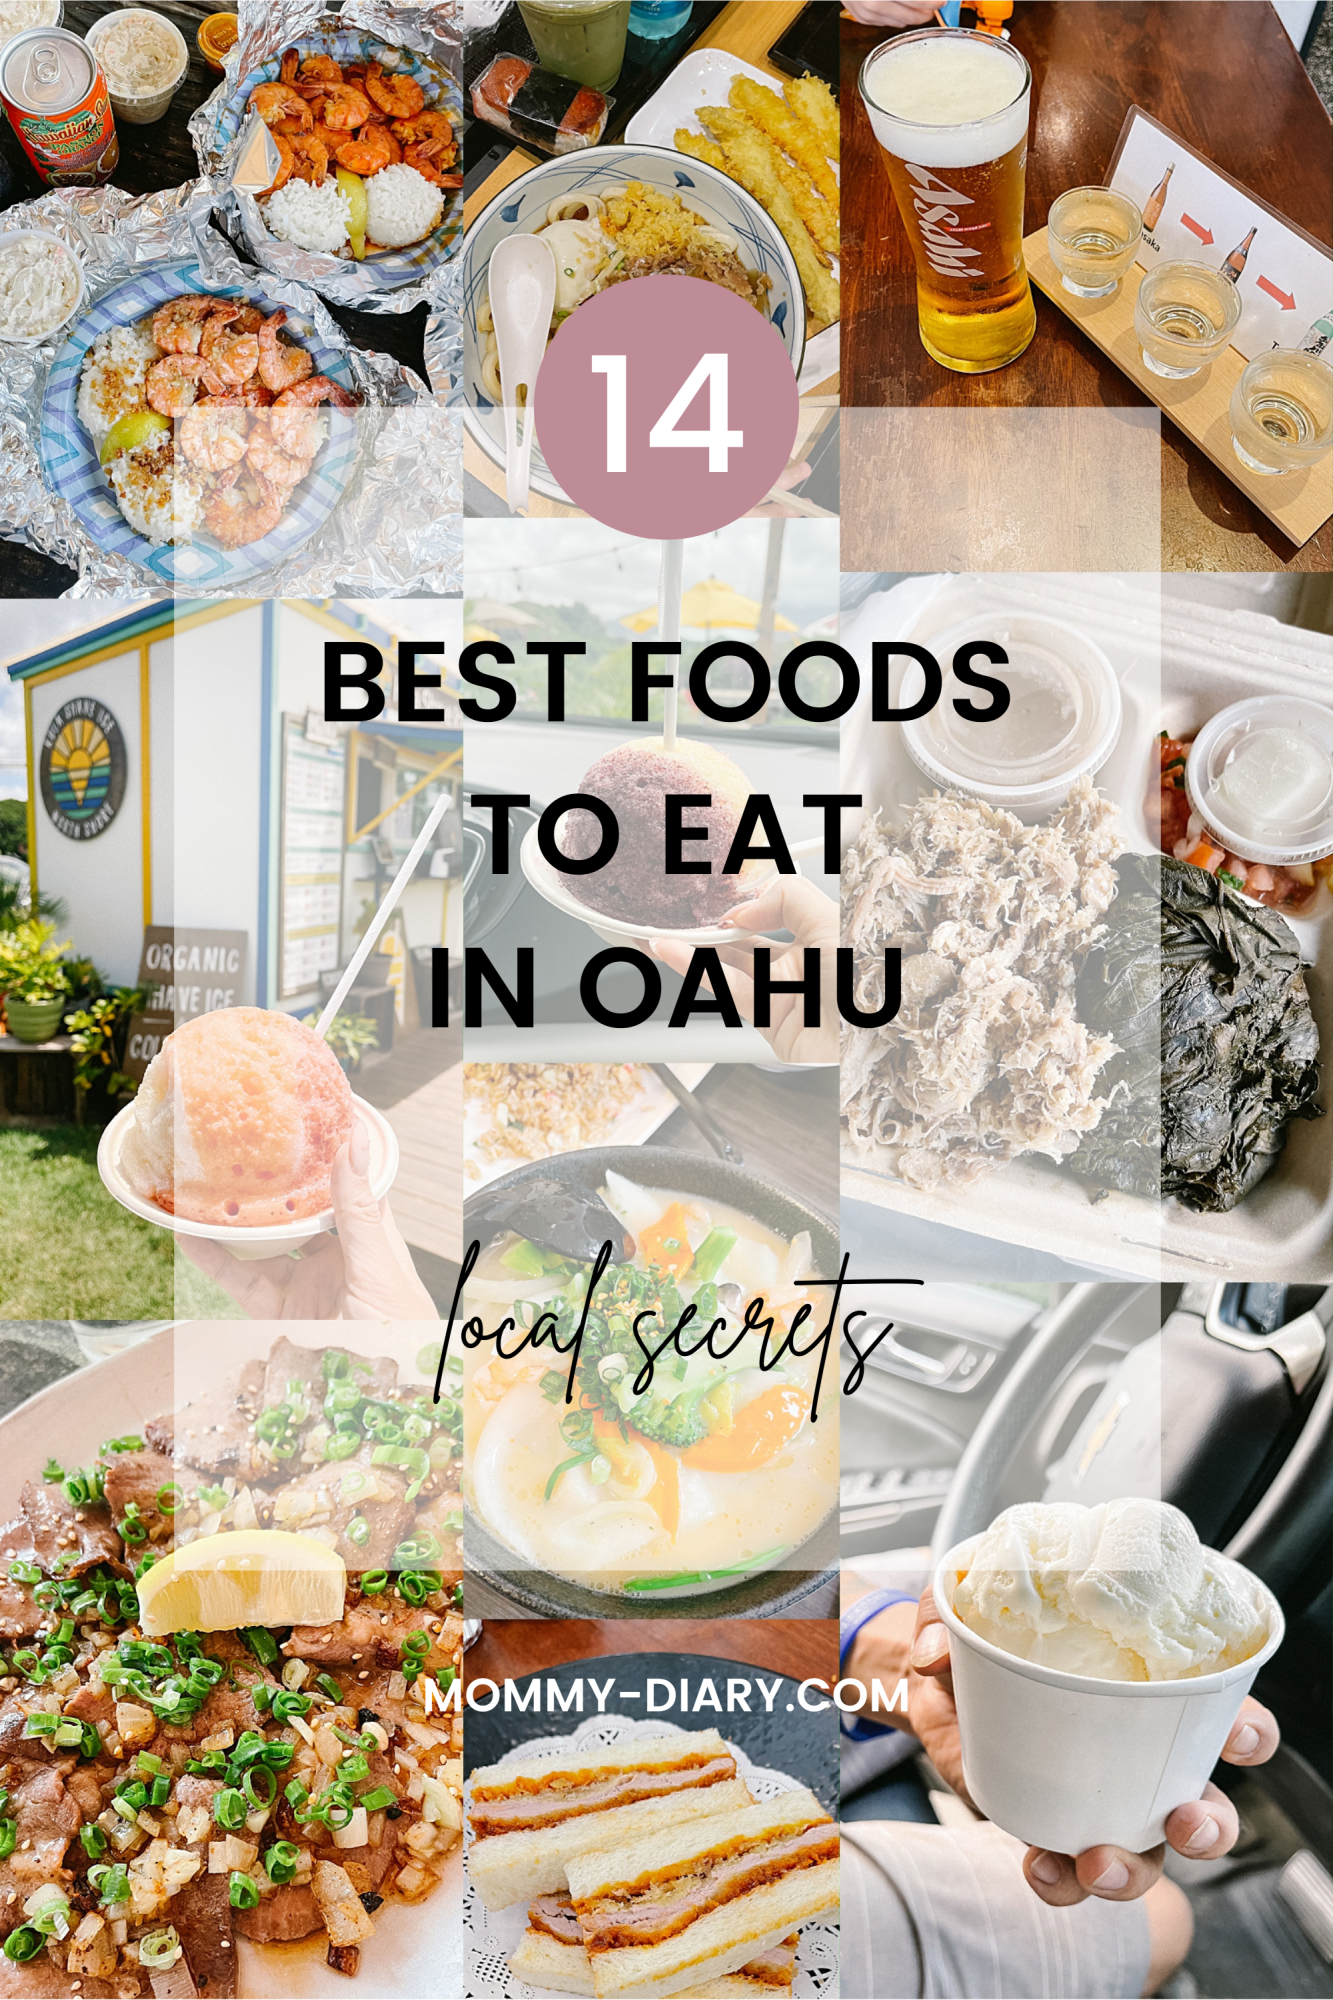 Best Places To Eat In Oahu: Local Favorites